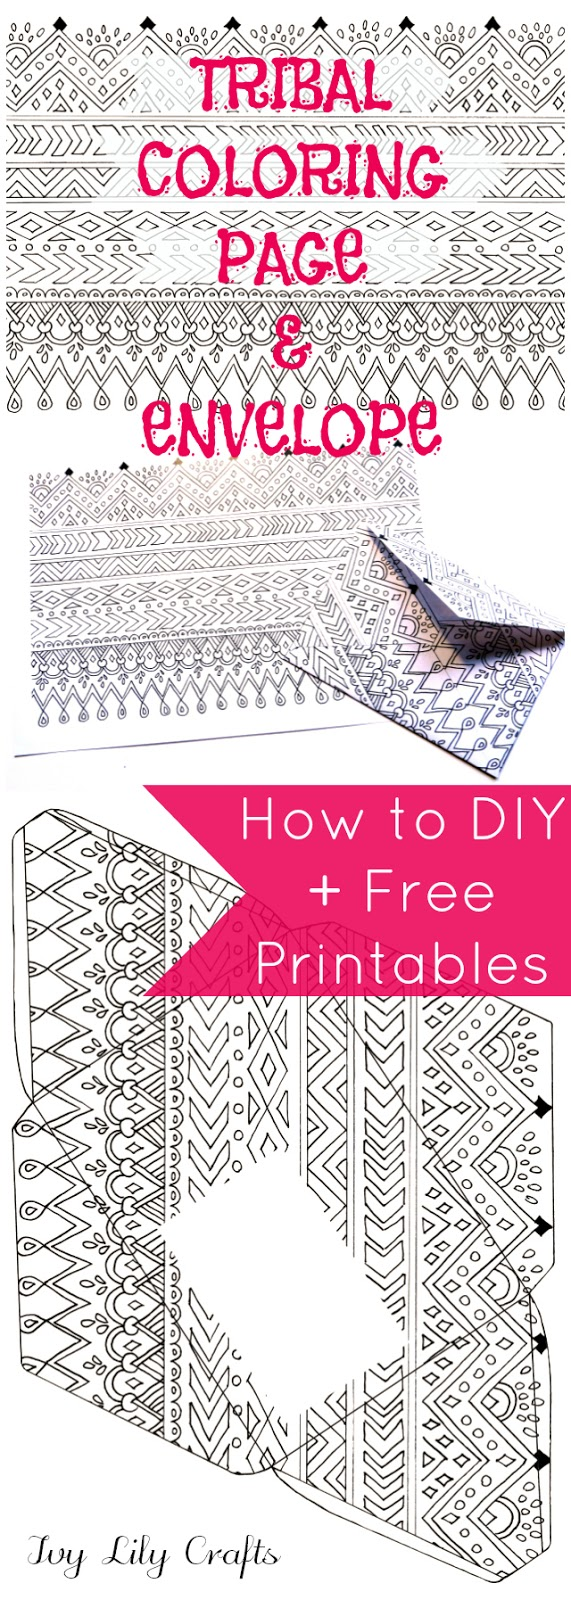 Tribal Coloring Book Page and Envelope. Free Printables + How to DIY (Video).